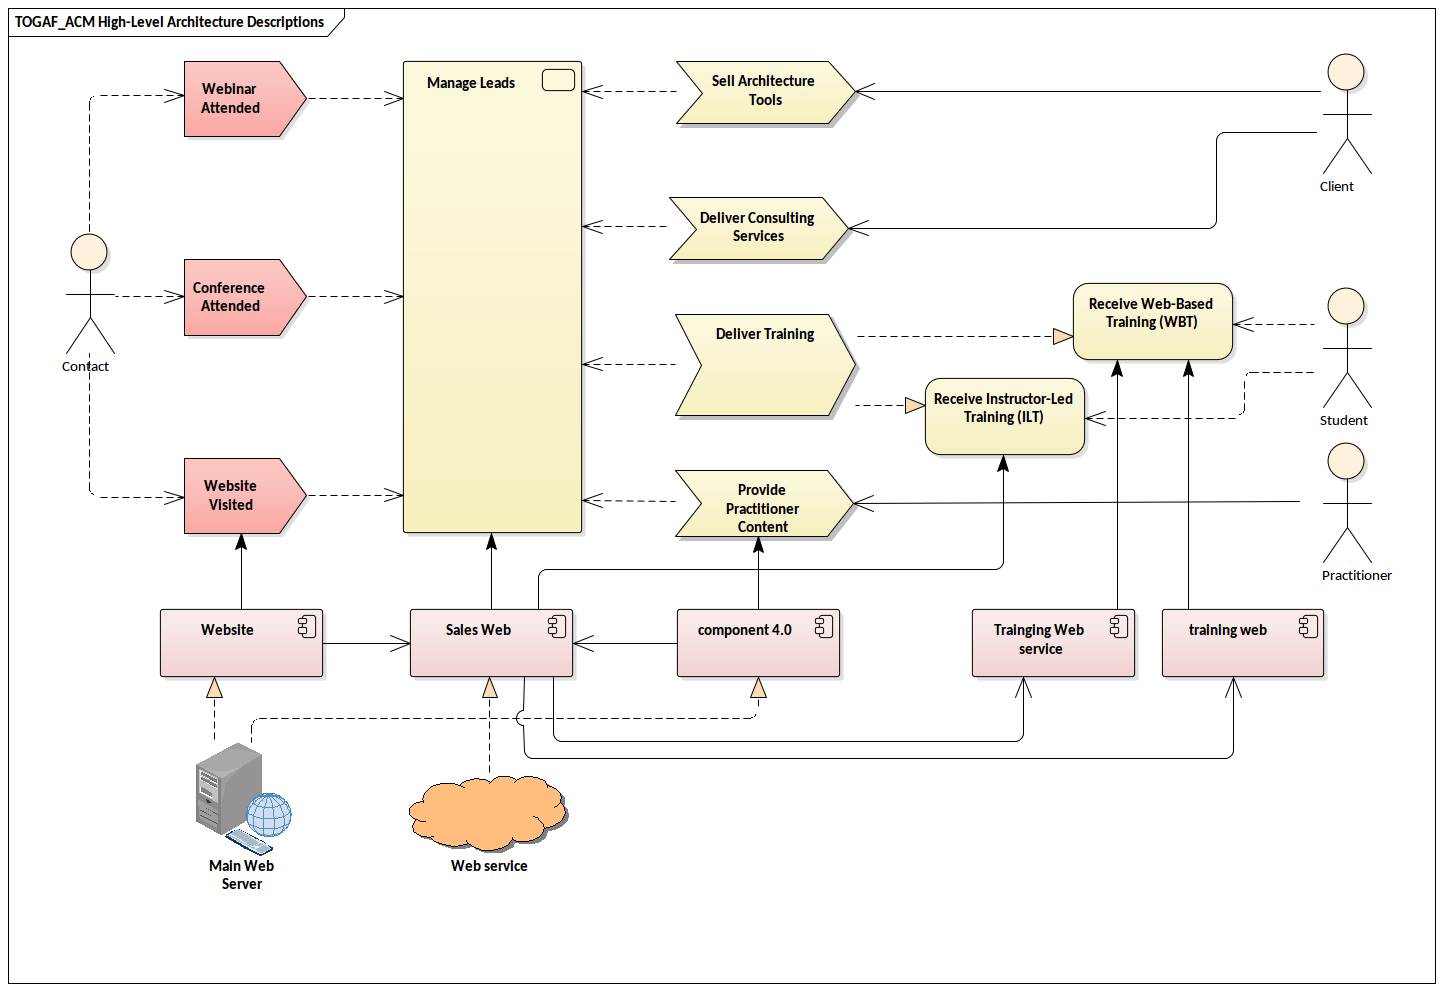 hight resolution of an example of a togaf high level architecture description diagram covering the core components of the baseline architecture of a project